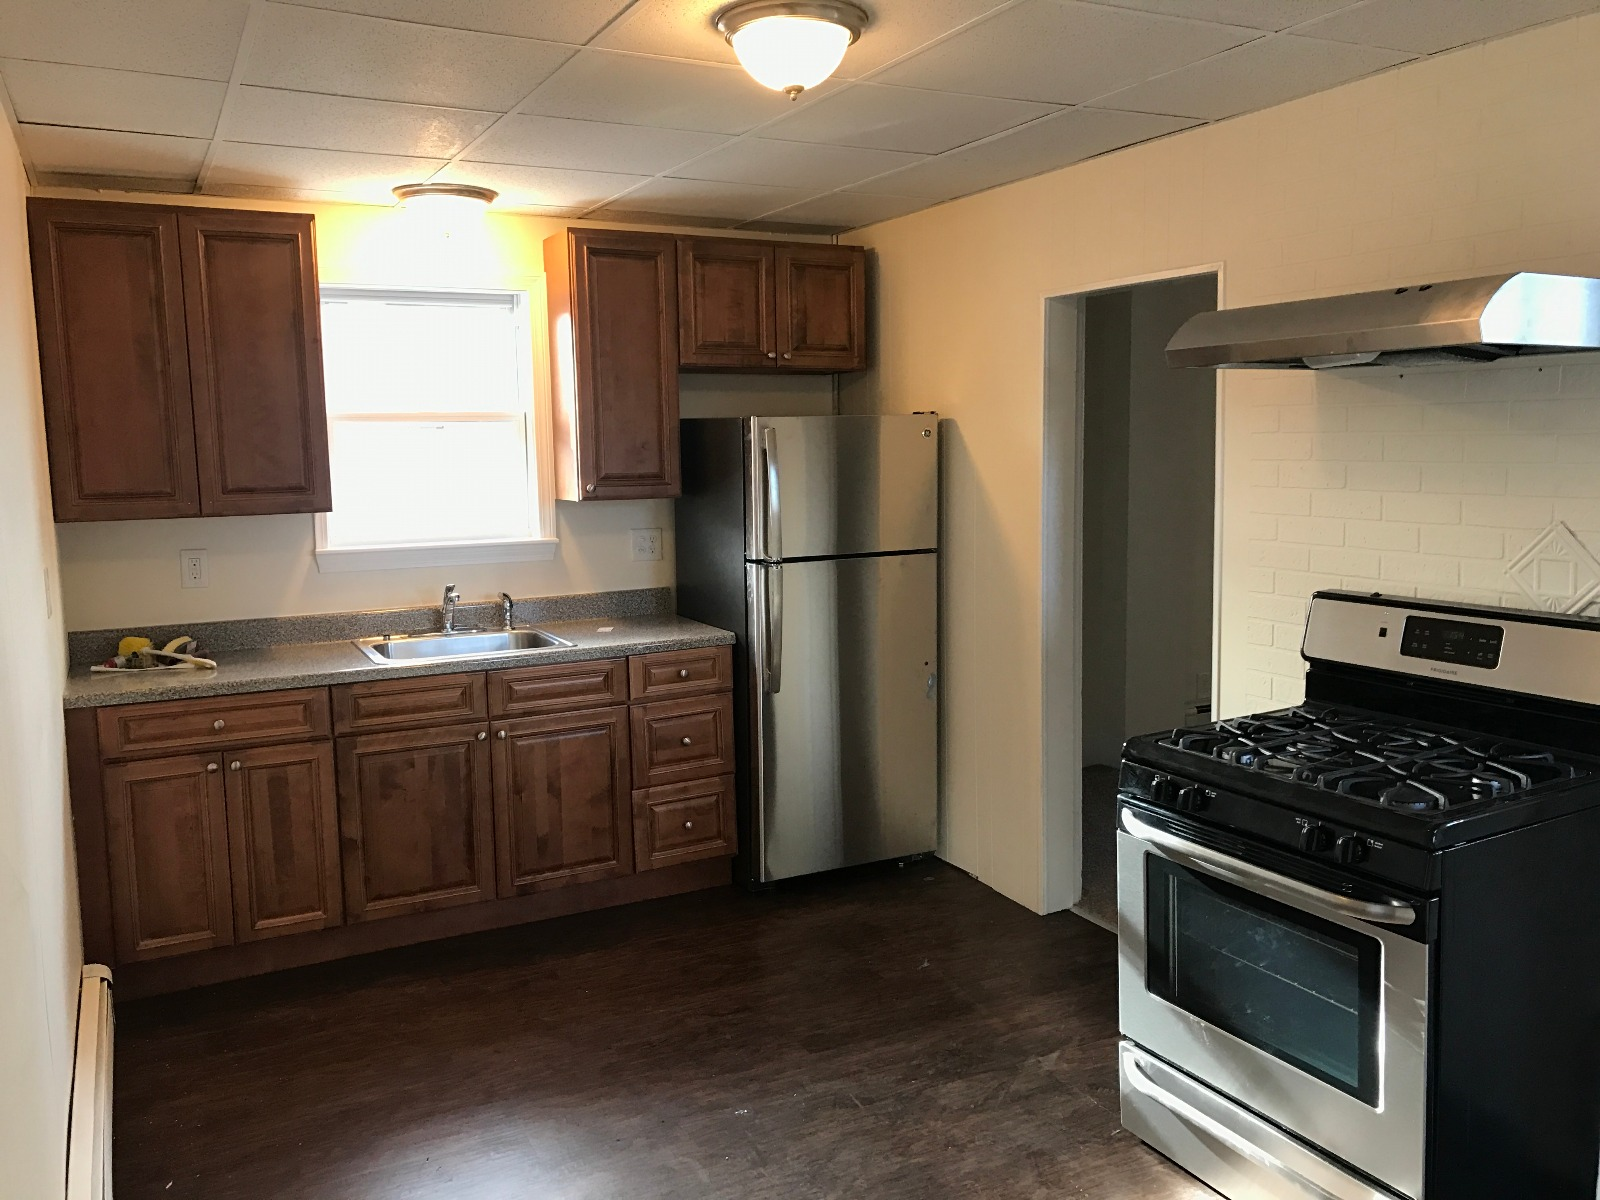 3 Beds, 1 Bath apartment in Somerville for $725